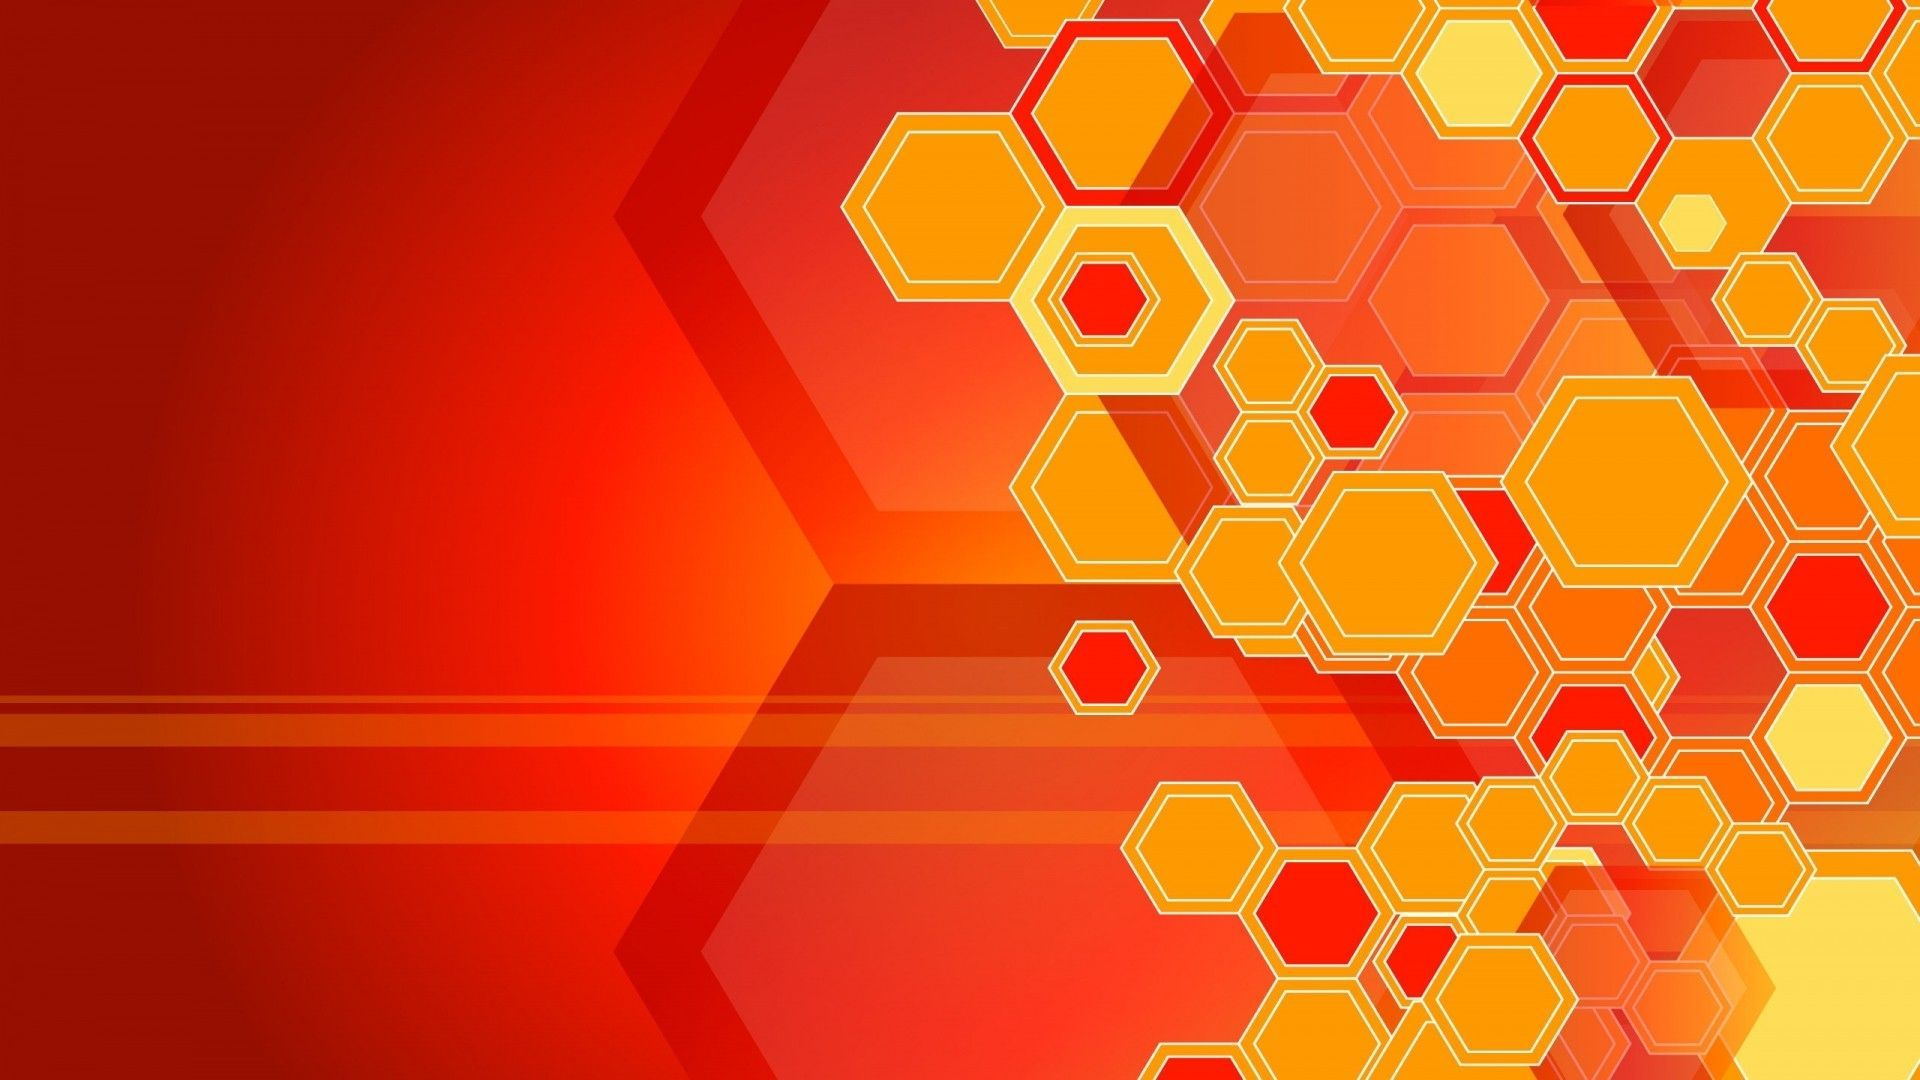 Orange Geometric Wallpapers   Top Orange Geometric 1920x1080